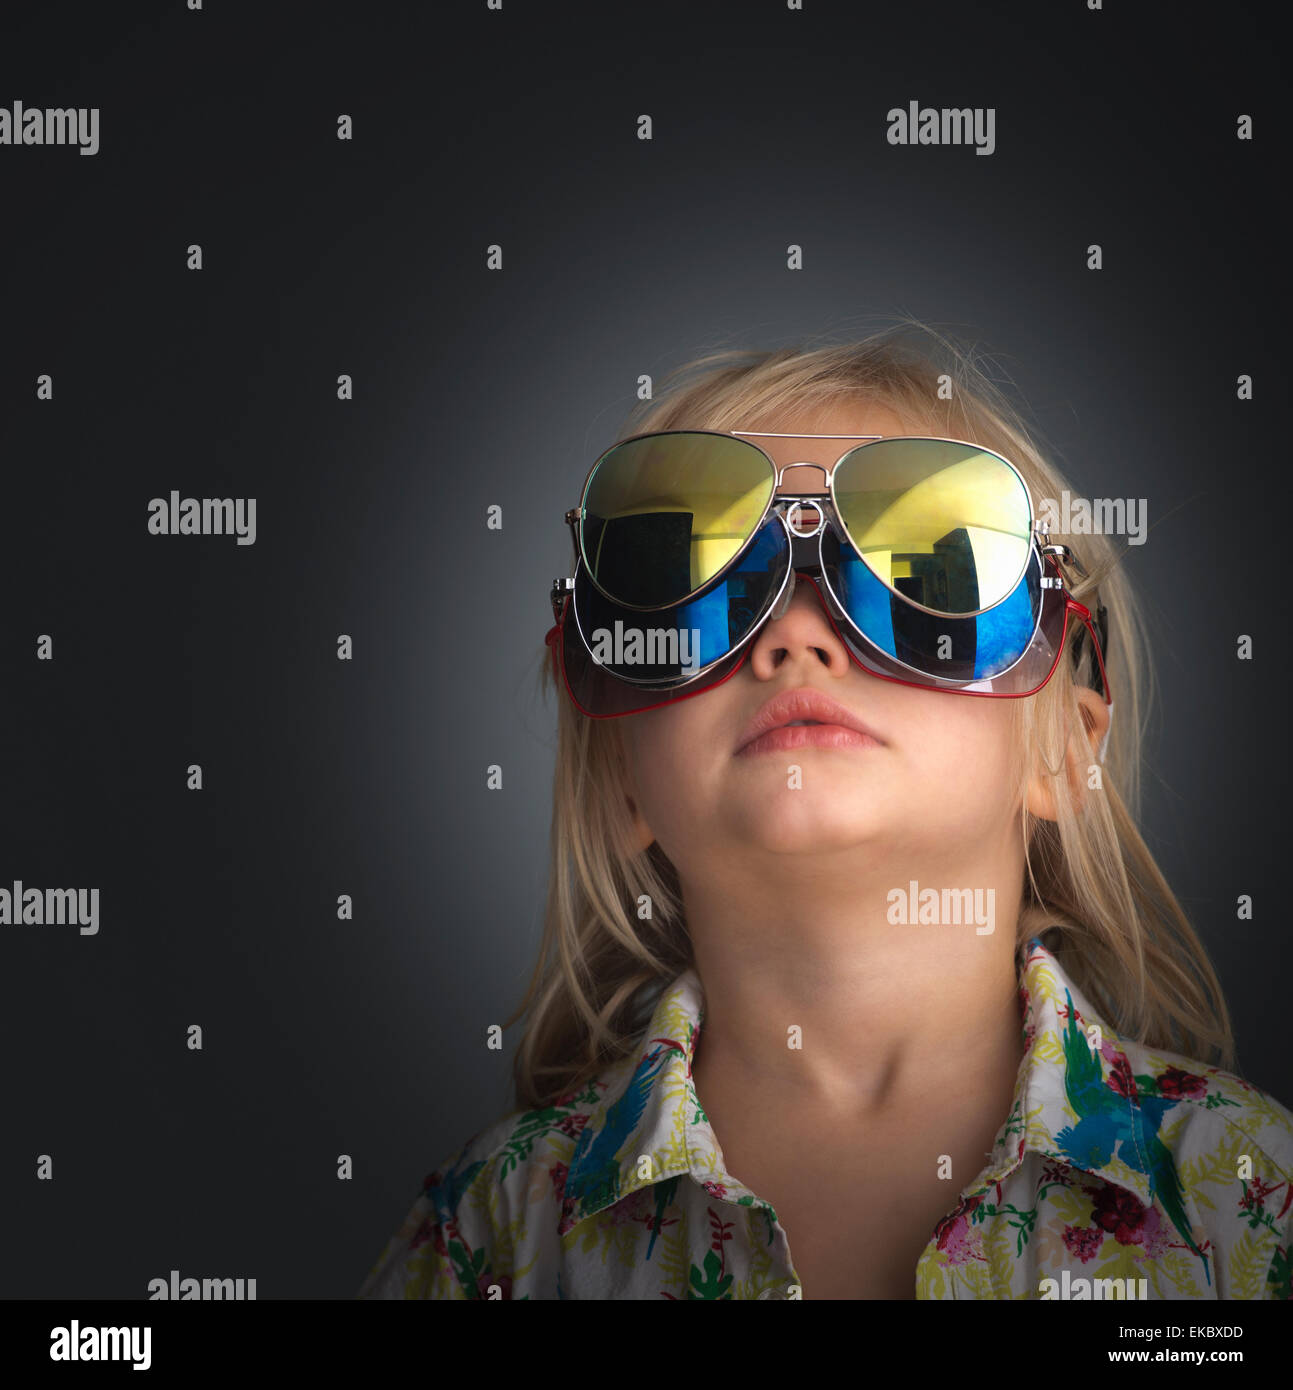 Portrait of young boy wearing 3 pairs of sunglasses - Stock Image